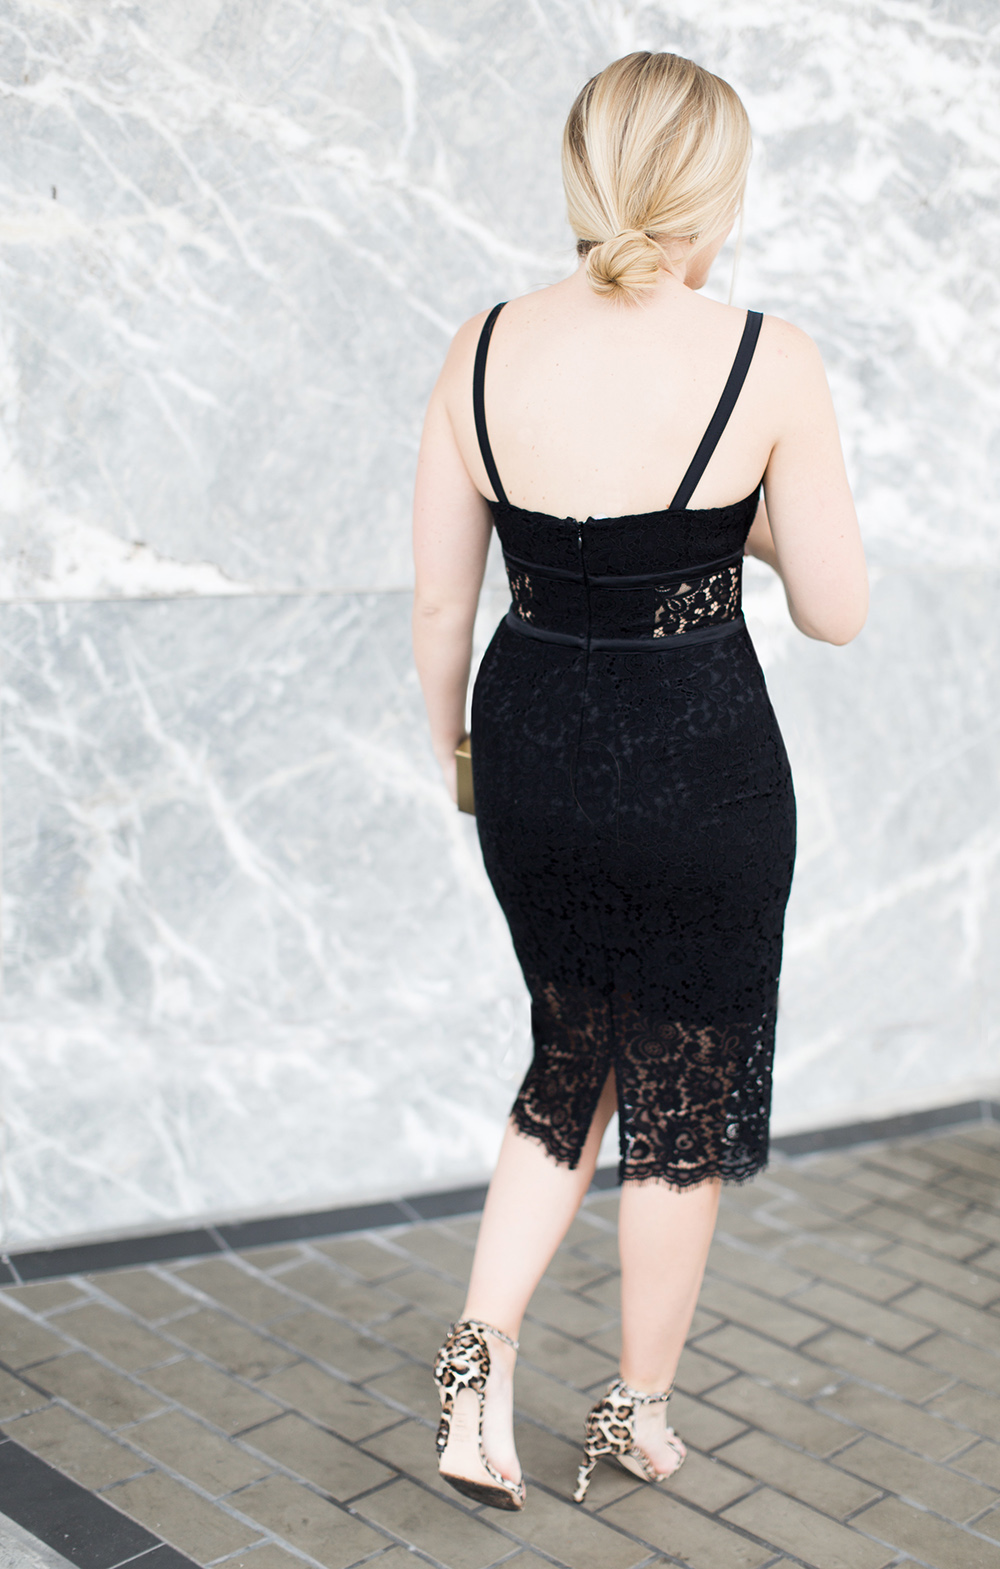 Express Black Lacey Dress + Giveaway